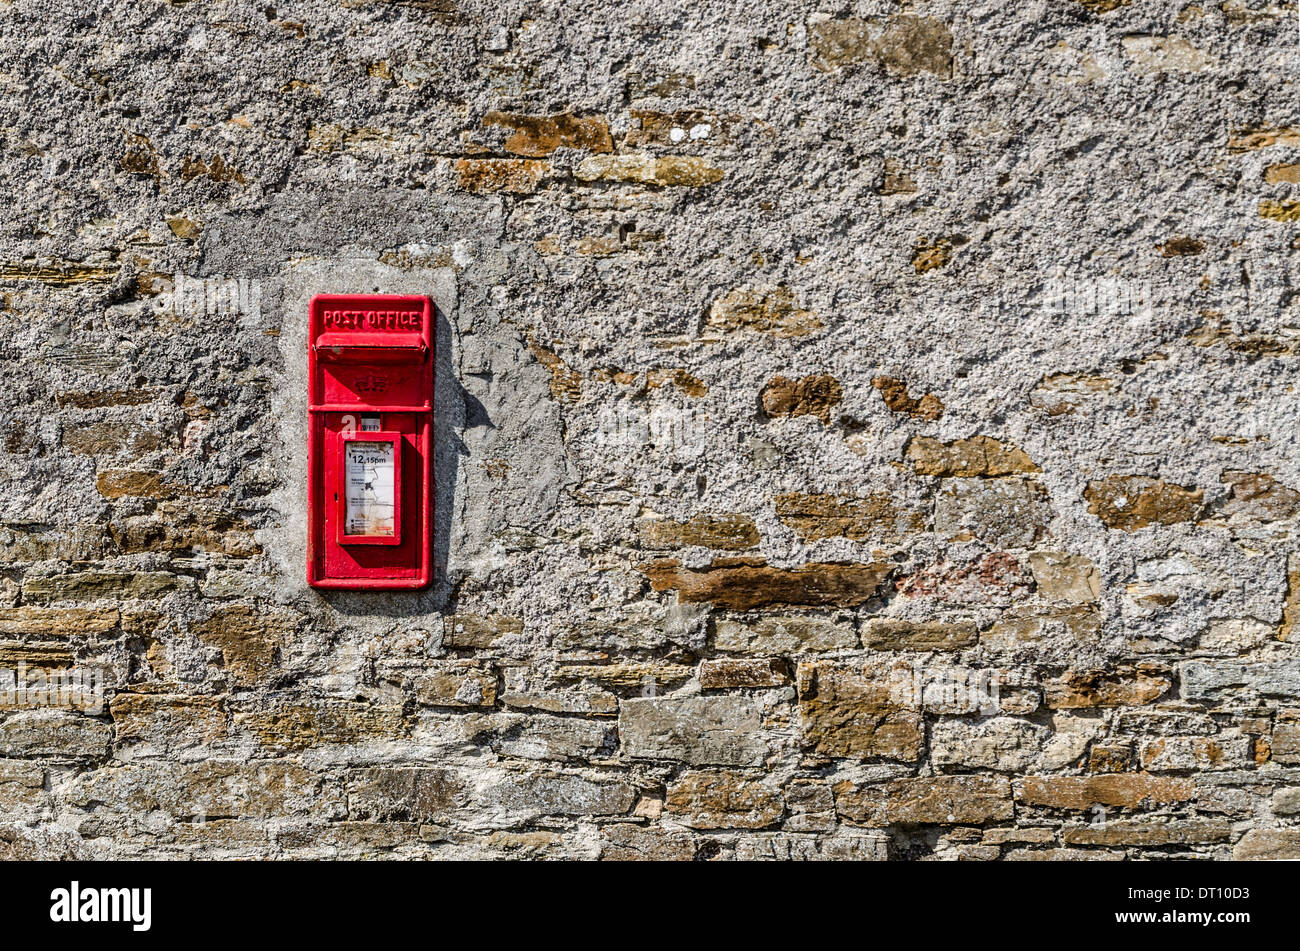 Red postbox - Stock Image